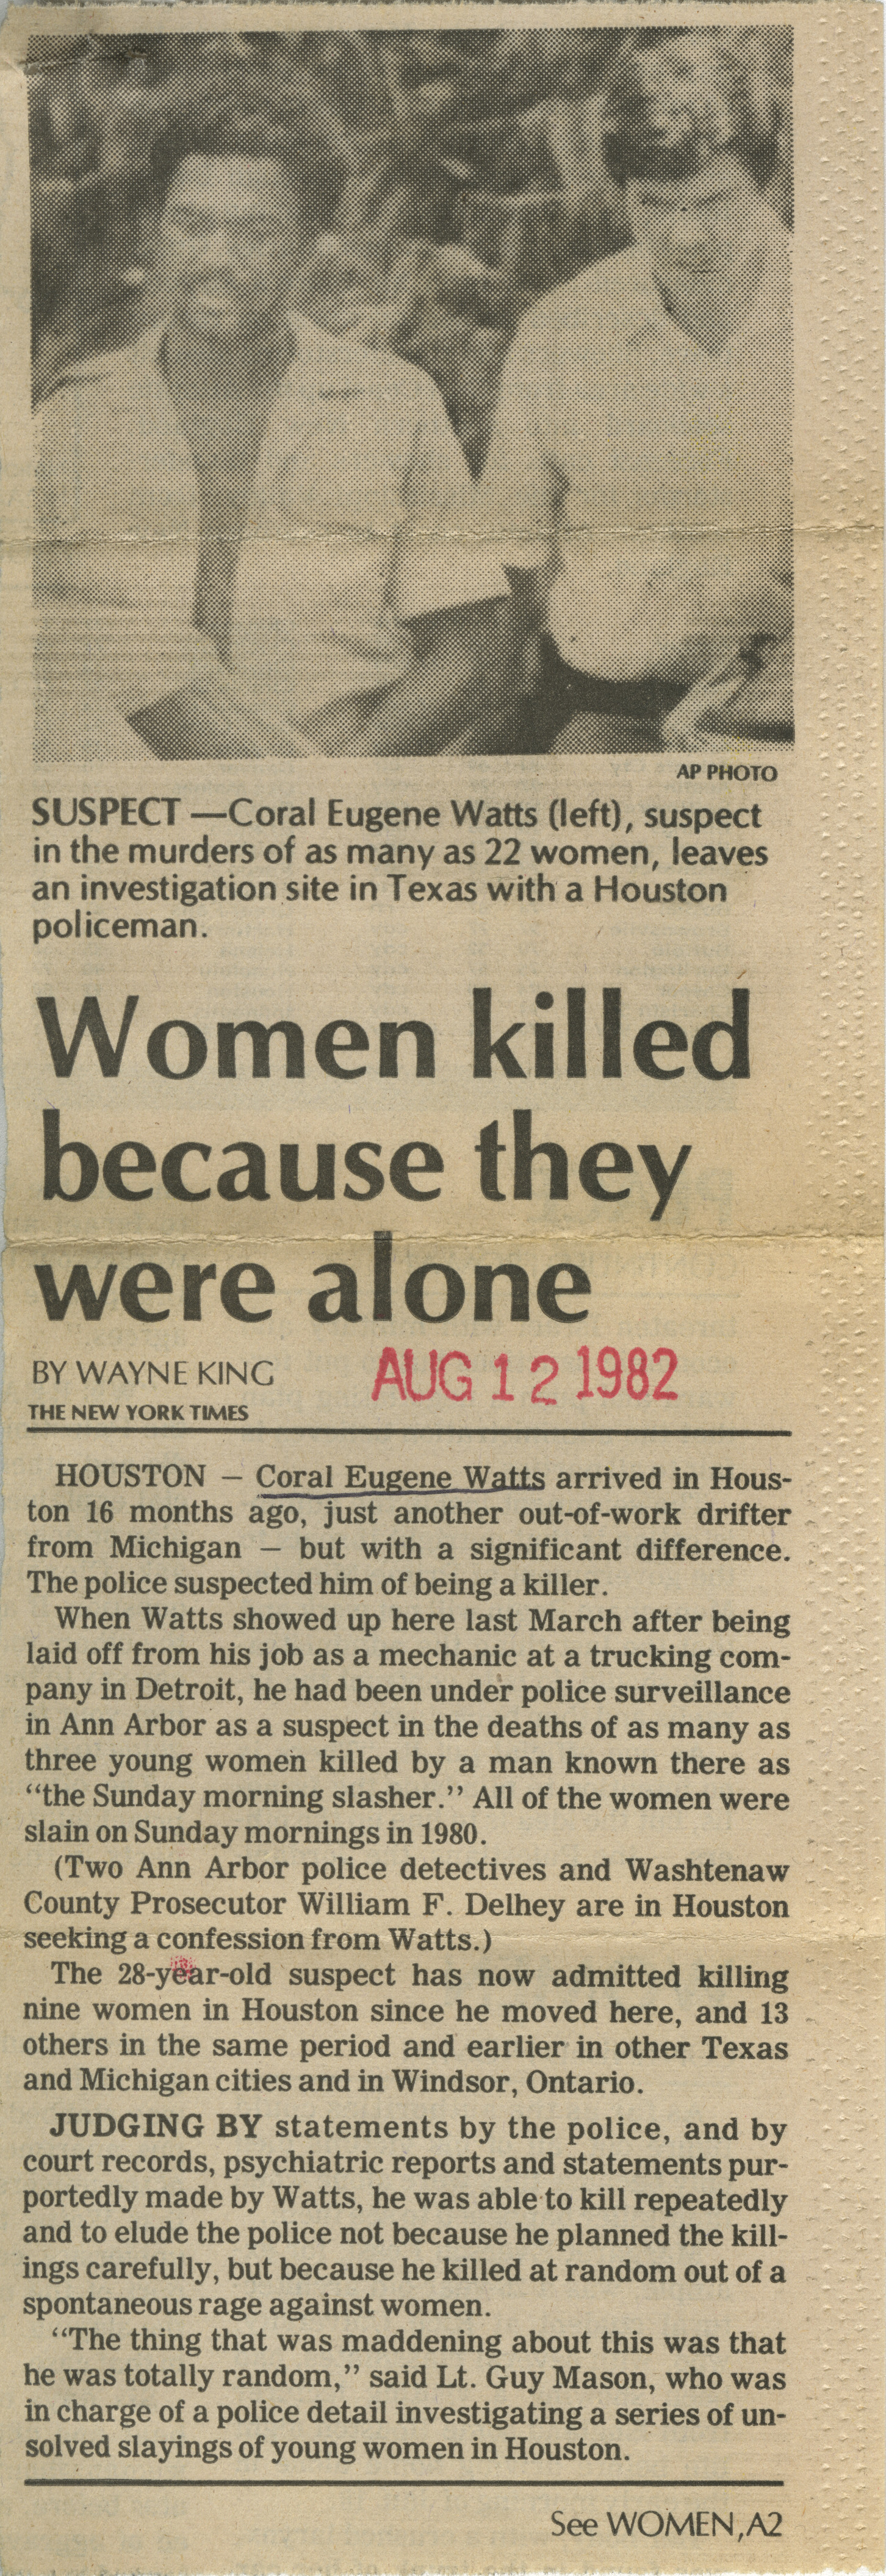 Women killed because they were alone image